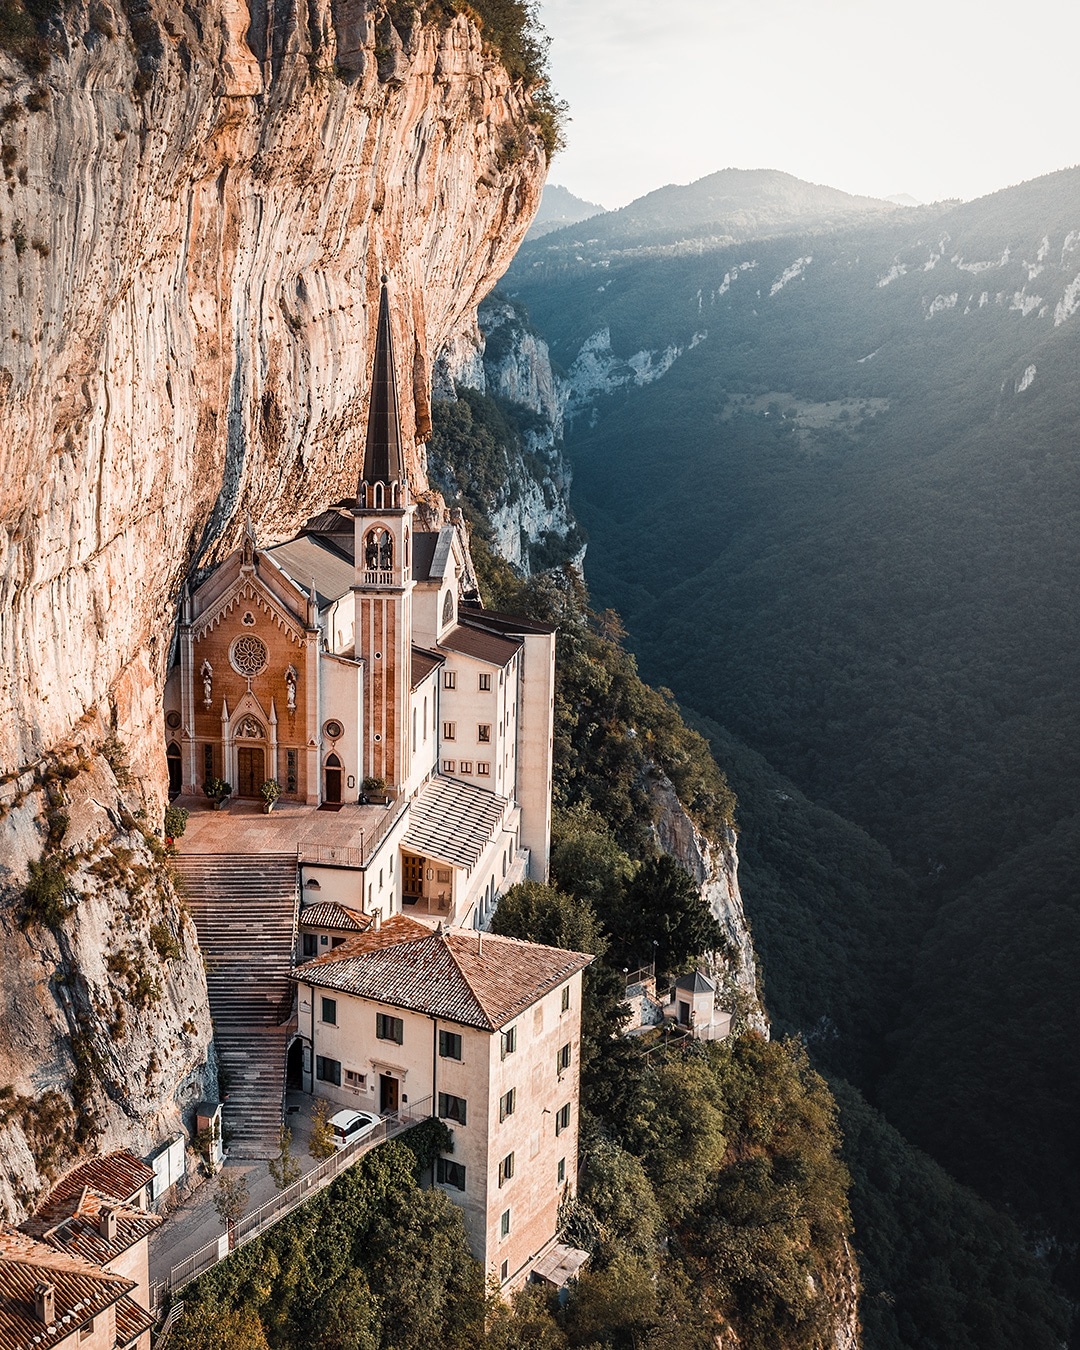 Church in Italy at a cliff